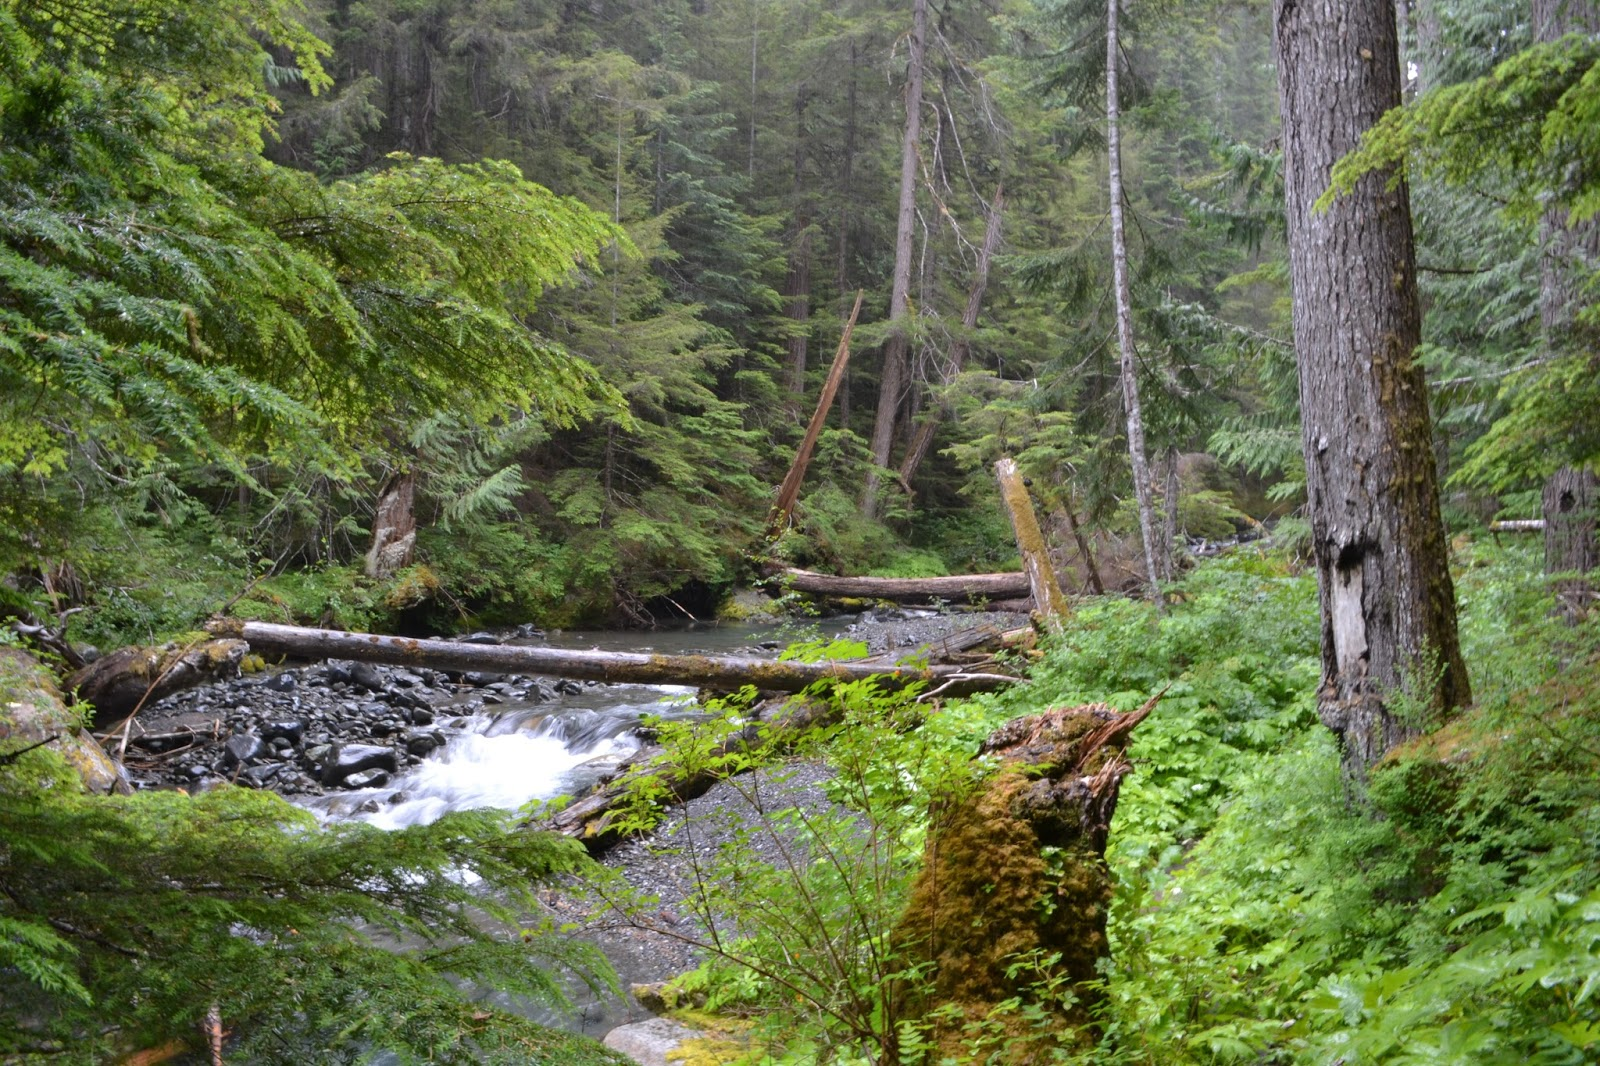 ENVIR 495C 2015 Landscape Change And The Future Of Wilderness